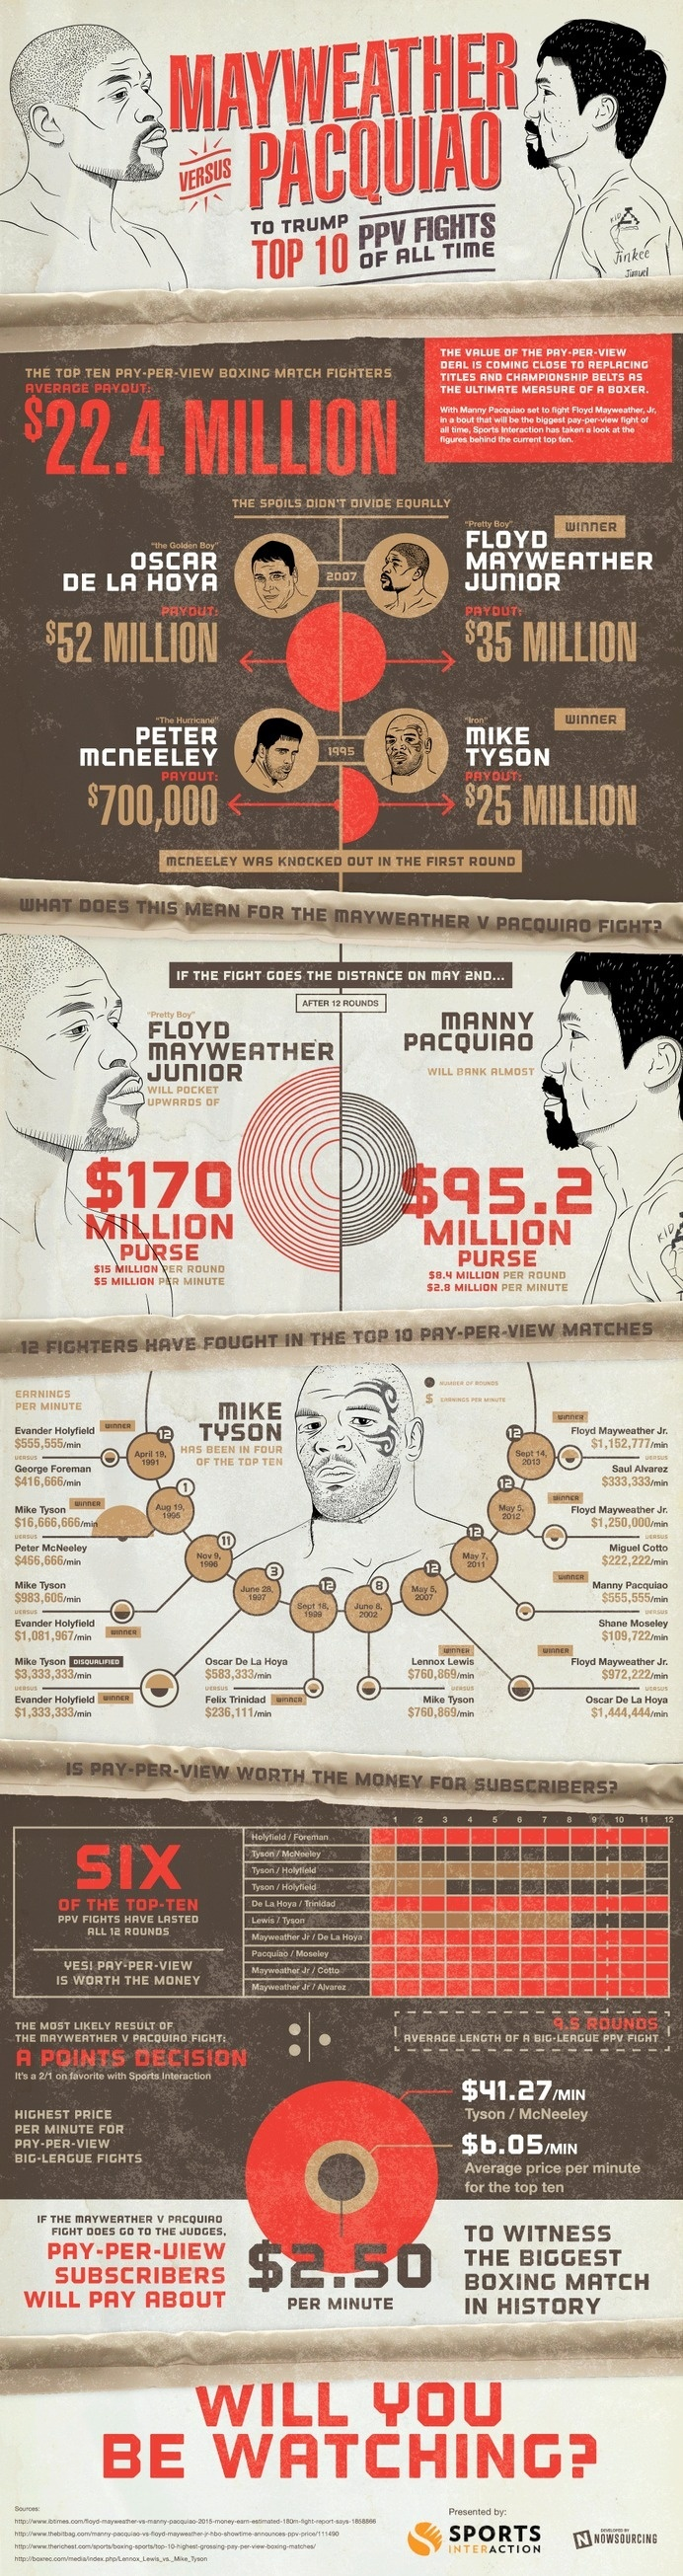 Learn all about the top prizes in boxing as well as the real cost of pay per view from this infographic. Boxing is actually a great value f #vs #mayweather #boxing #fighting #prize #pacquaio